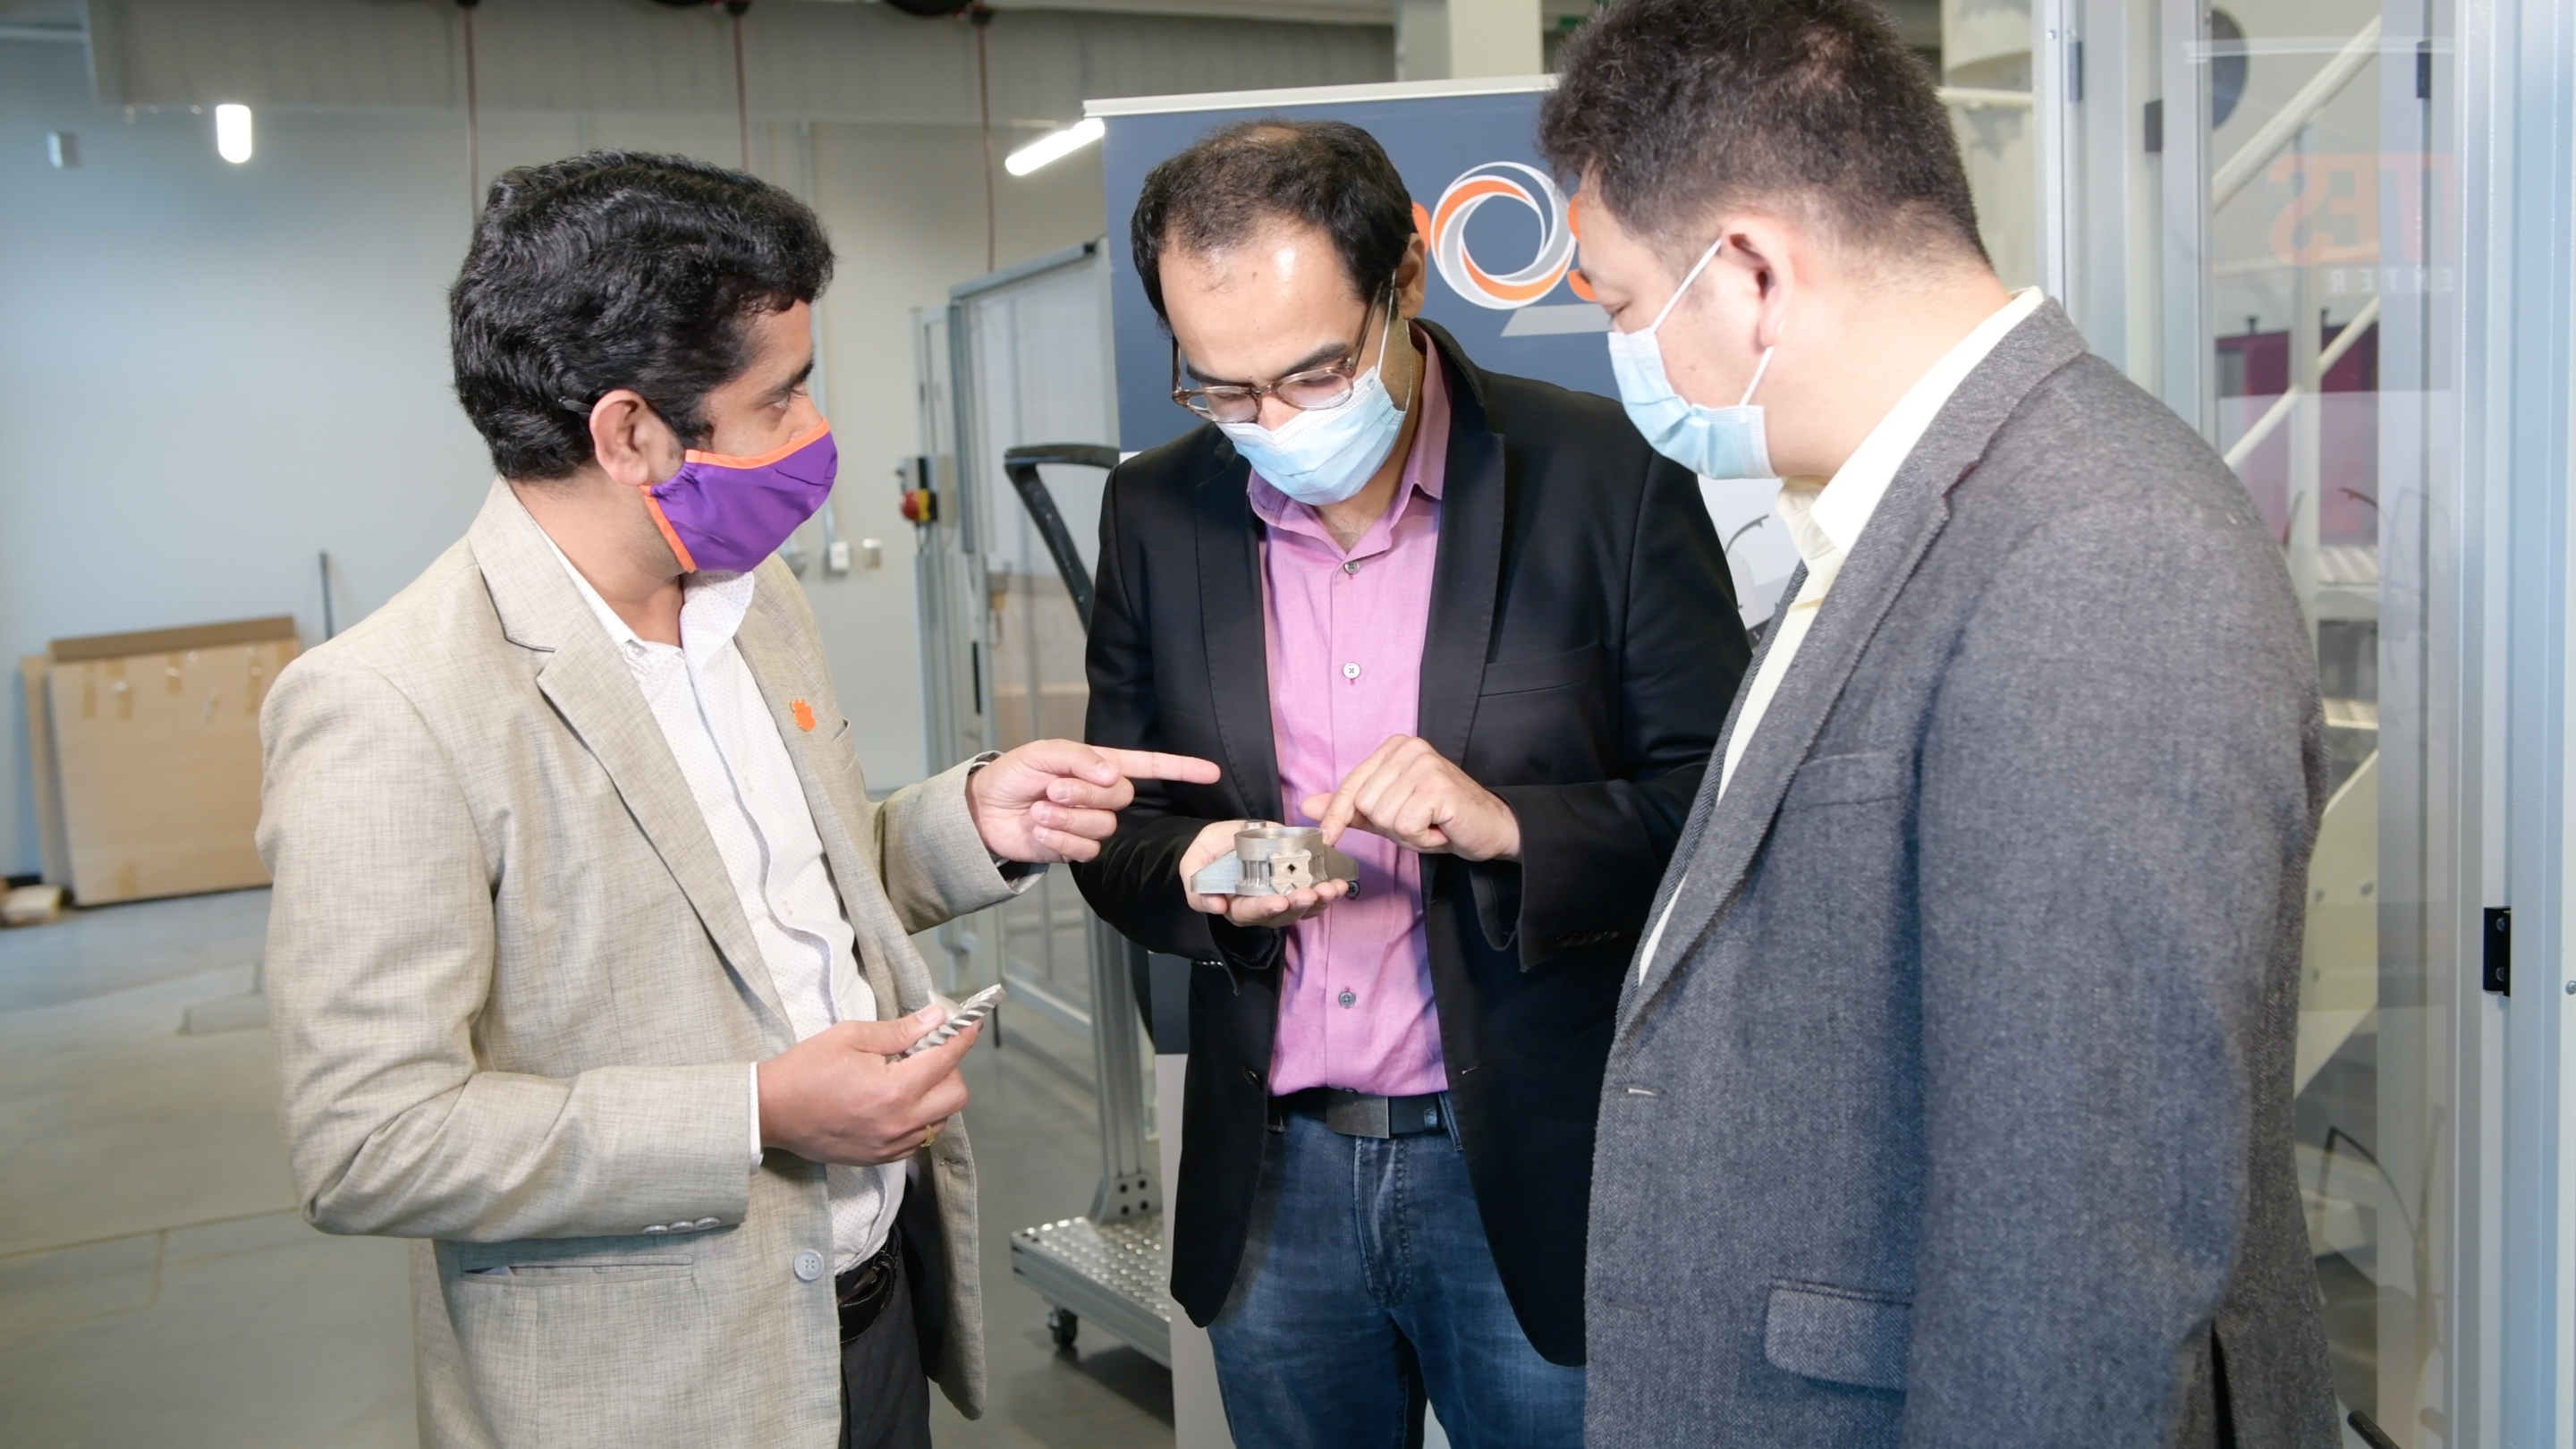 Clemson University project leaders Srikanth Pilla, Fadi Abdeljawad and Gang Li (left to right) as well as Shunyu Liu and Rahul Rai (not pictured) will drive research from the Clemson Composites Center in Greenville. Photo via Clemson University.